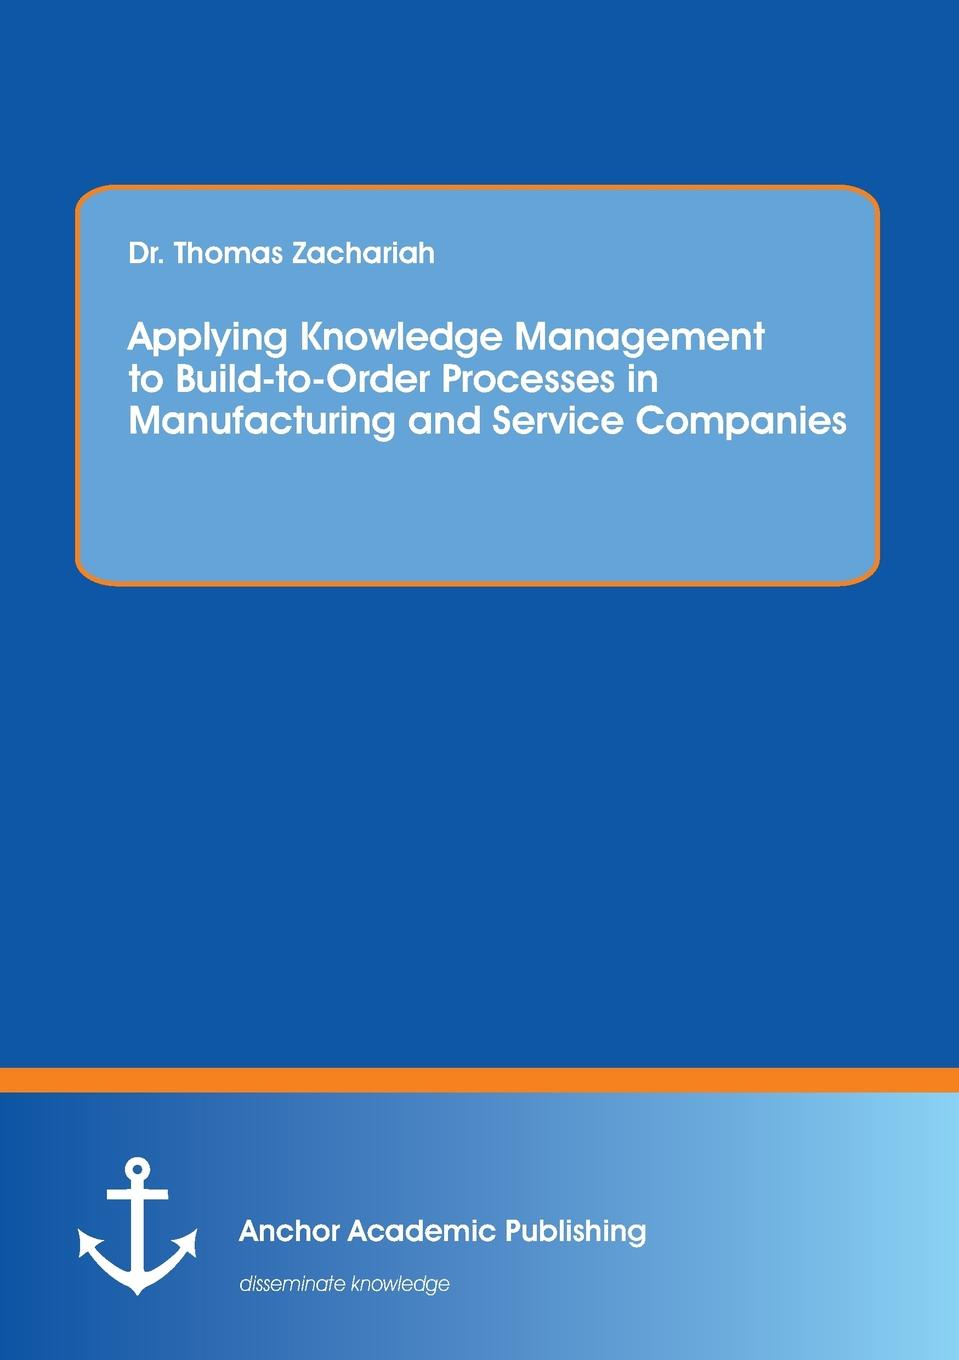 Dr. Thomas Zachariah Applying Knowledge Management to Build-to-Order Processes in Manufacturing and Service Companies carla o dell the new edge in knowledge how knowledge management is changing the way we do business